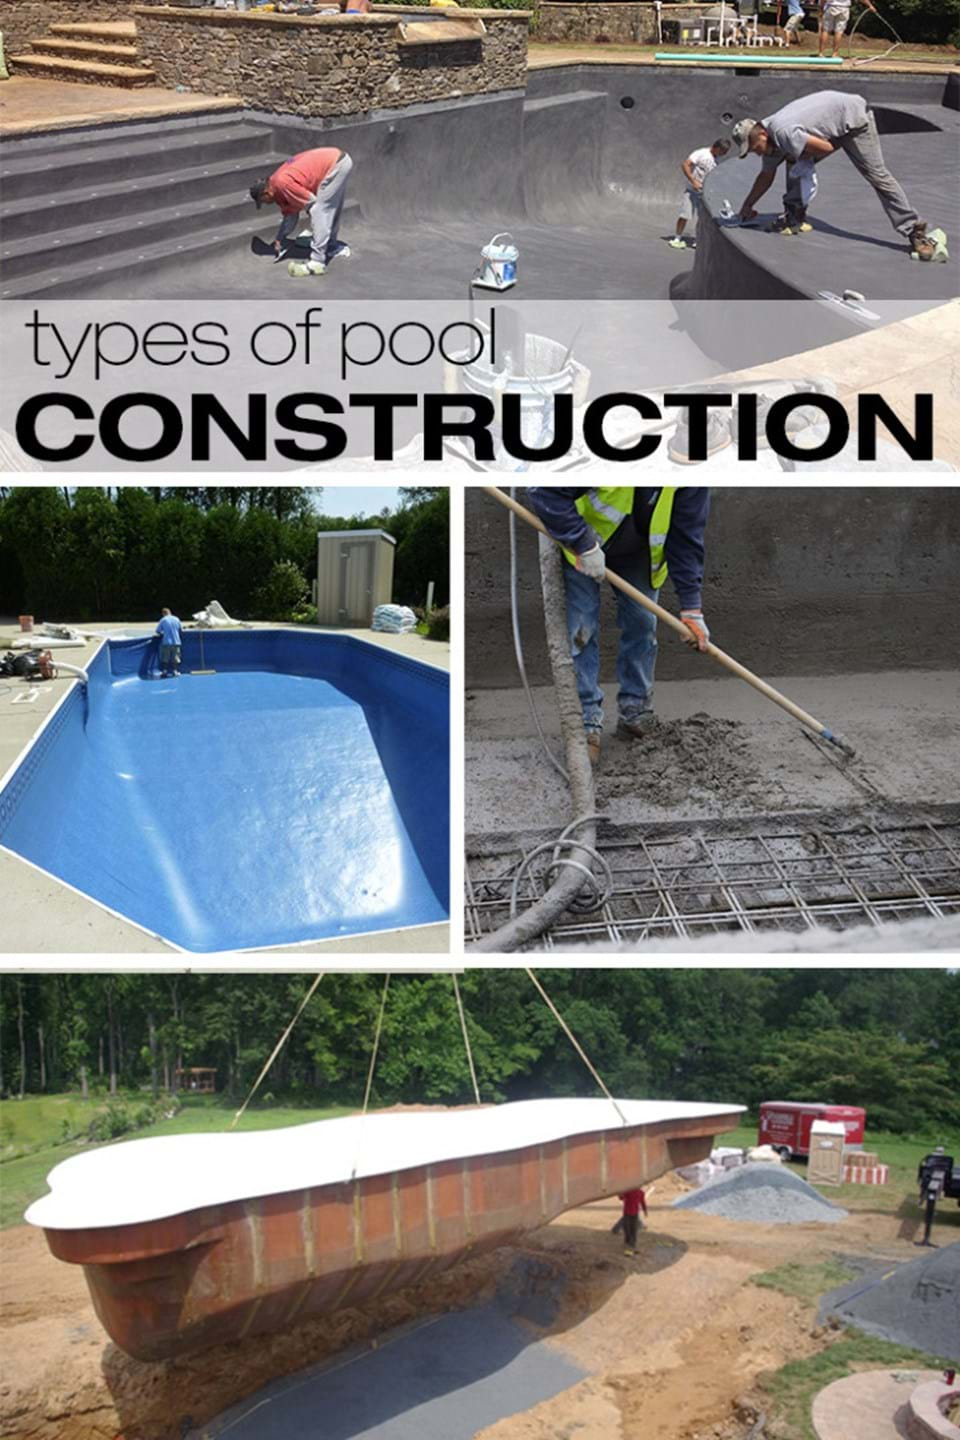 Types of inground swimming pools s r smith blog for Types of inground pools